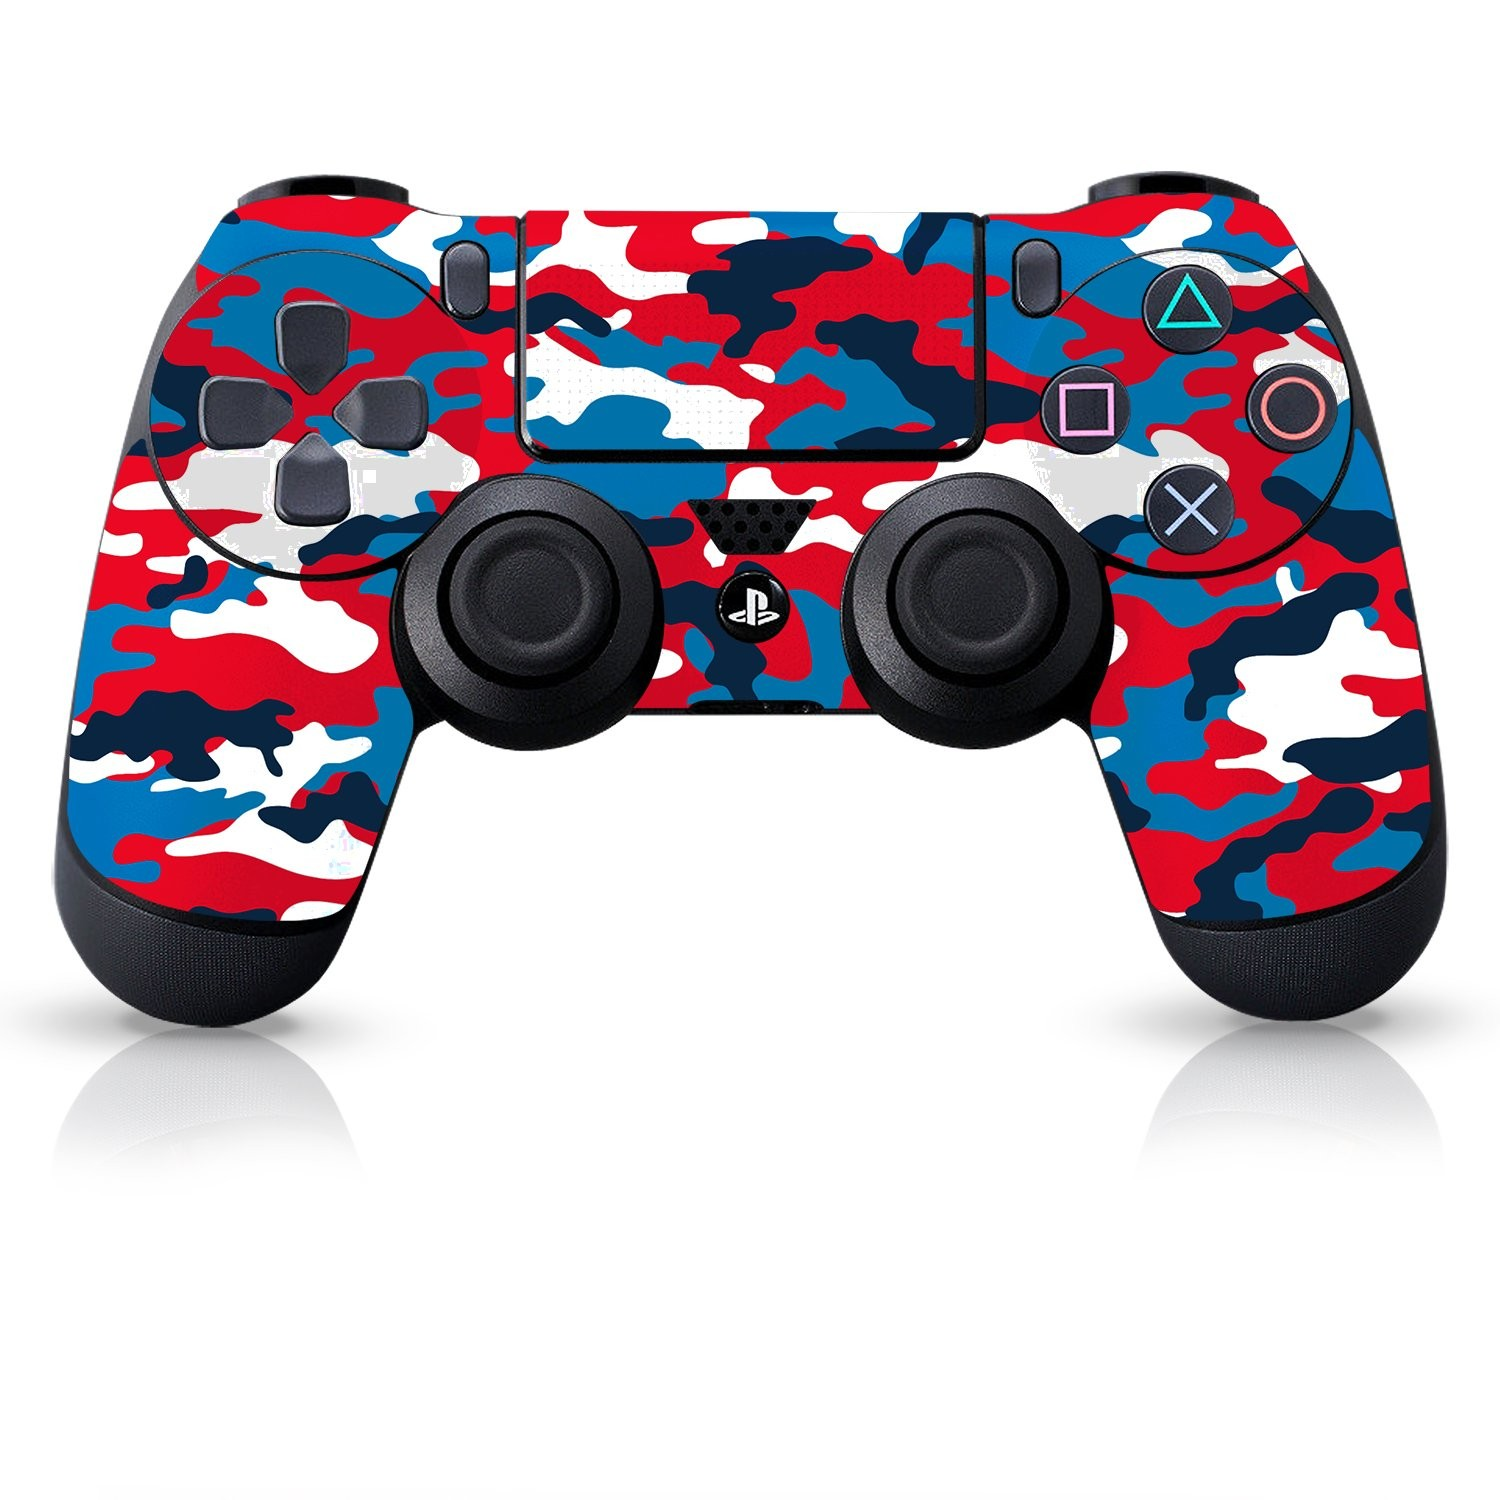 Officially Licensed Controller Skin - High Fashion Camo